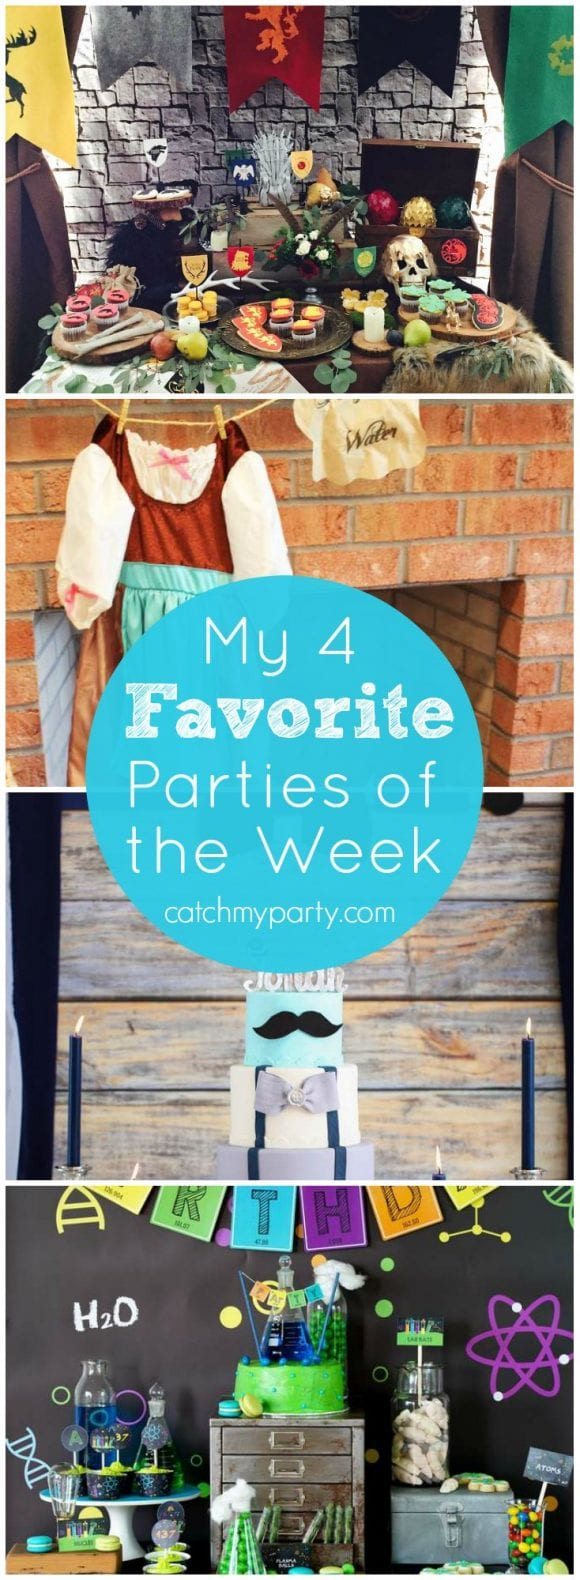 My 4 Favorite Parties this week: a Game of Thrones party, a Cinderella birthday, a science party, and a mustache bash baby shower | Catchmyparty.com